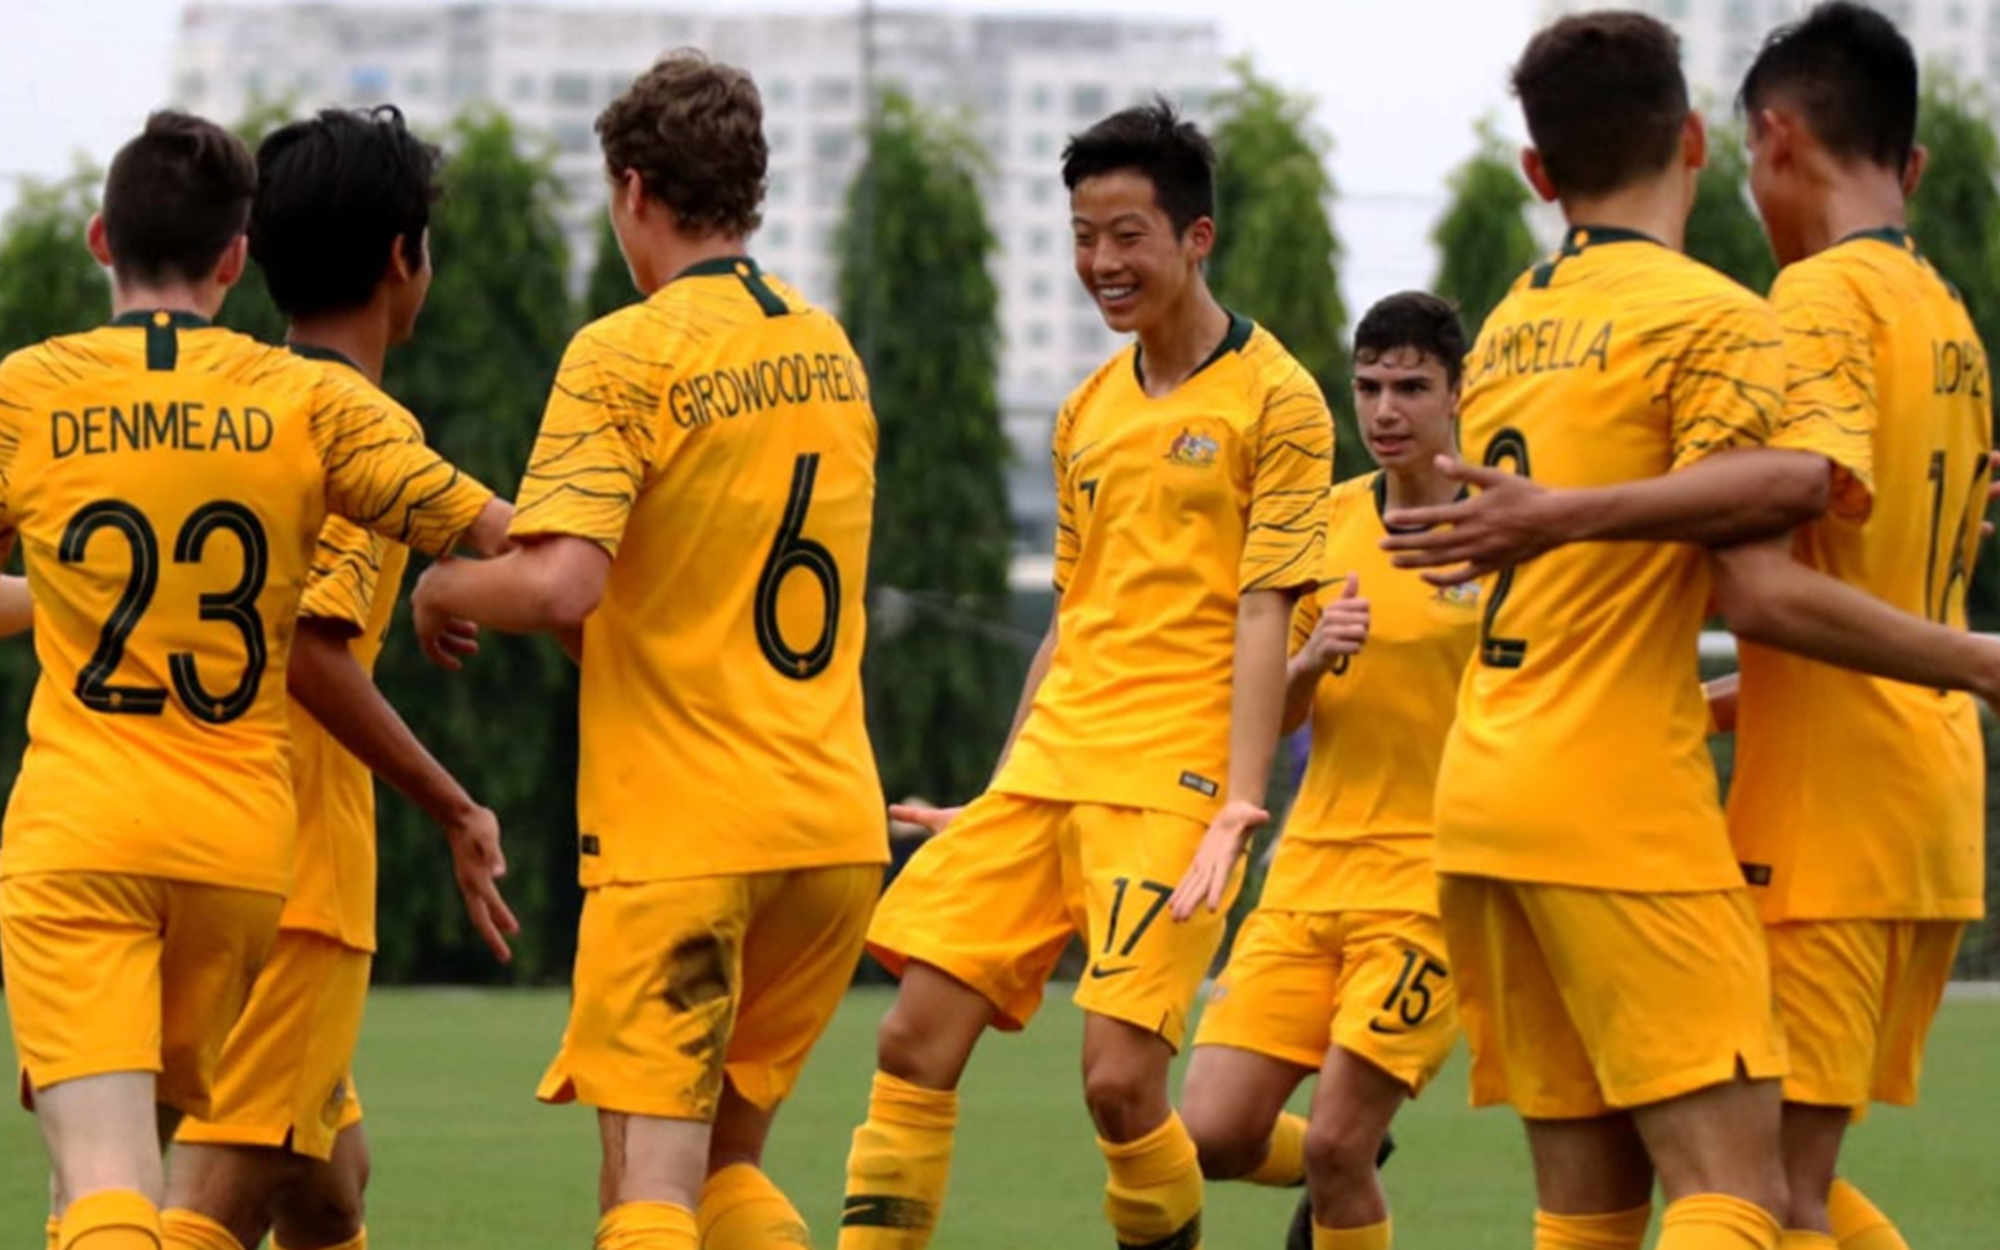 Joeys continue strong start to AFC U-16 Championship qualifiying